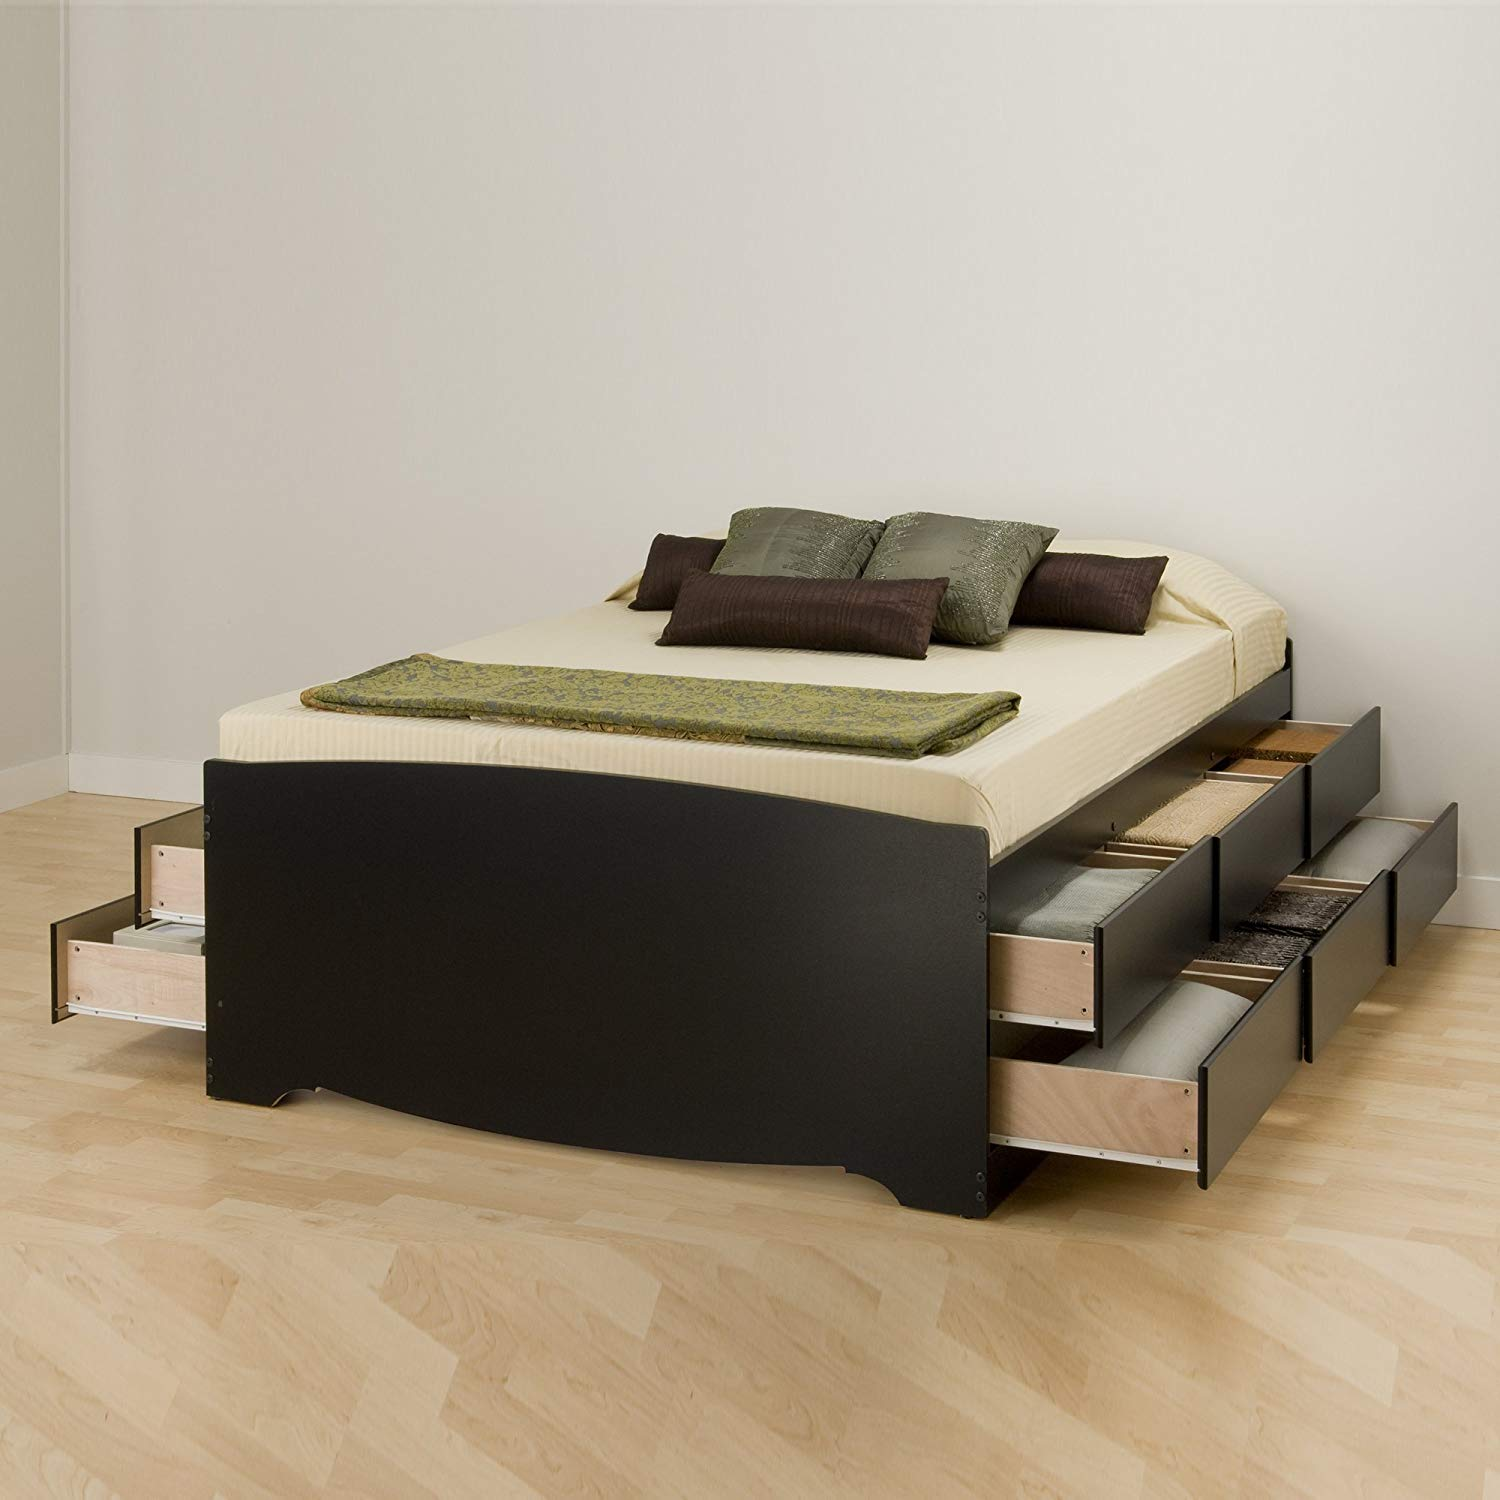 Image of: 12 Drawer Storage Bed Frame